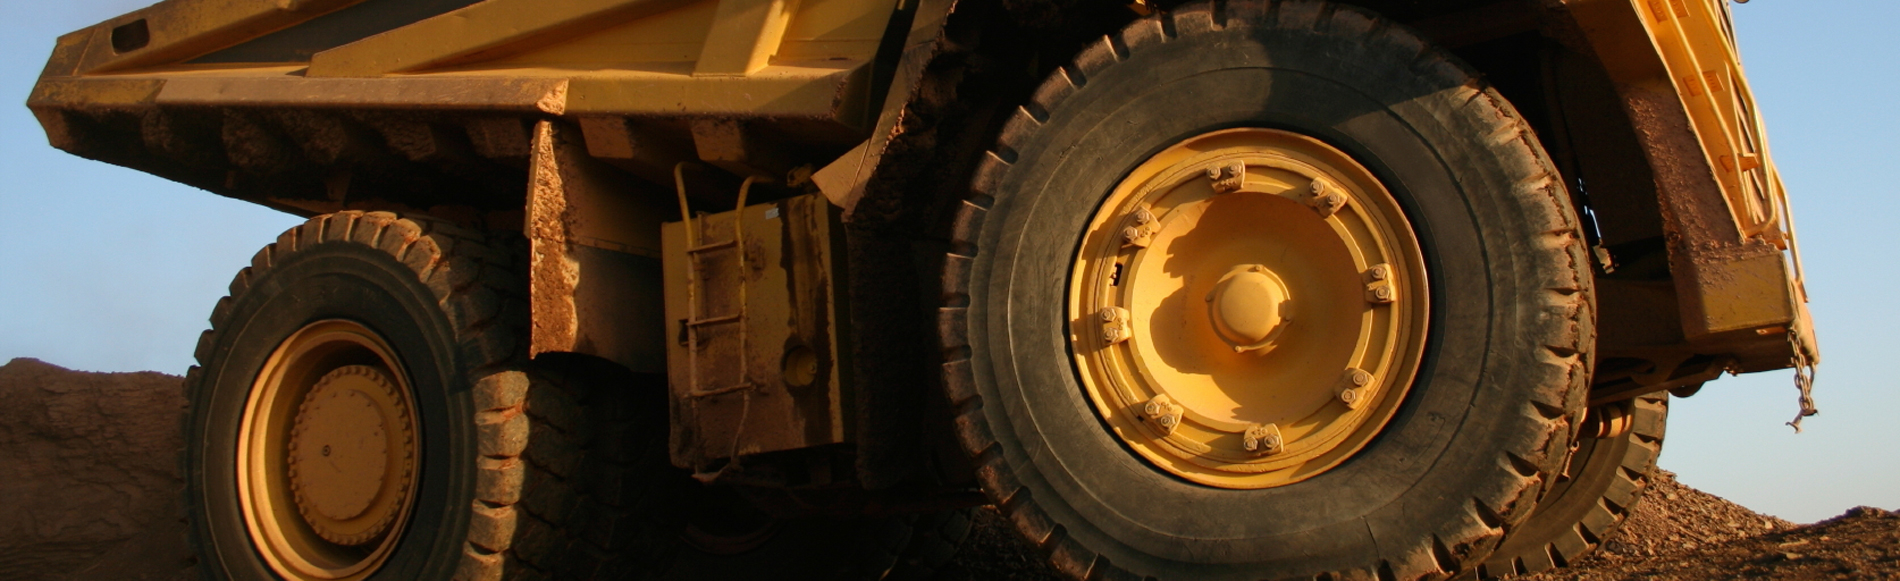 OTR Tires and Mining Equipment